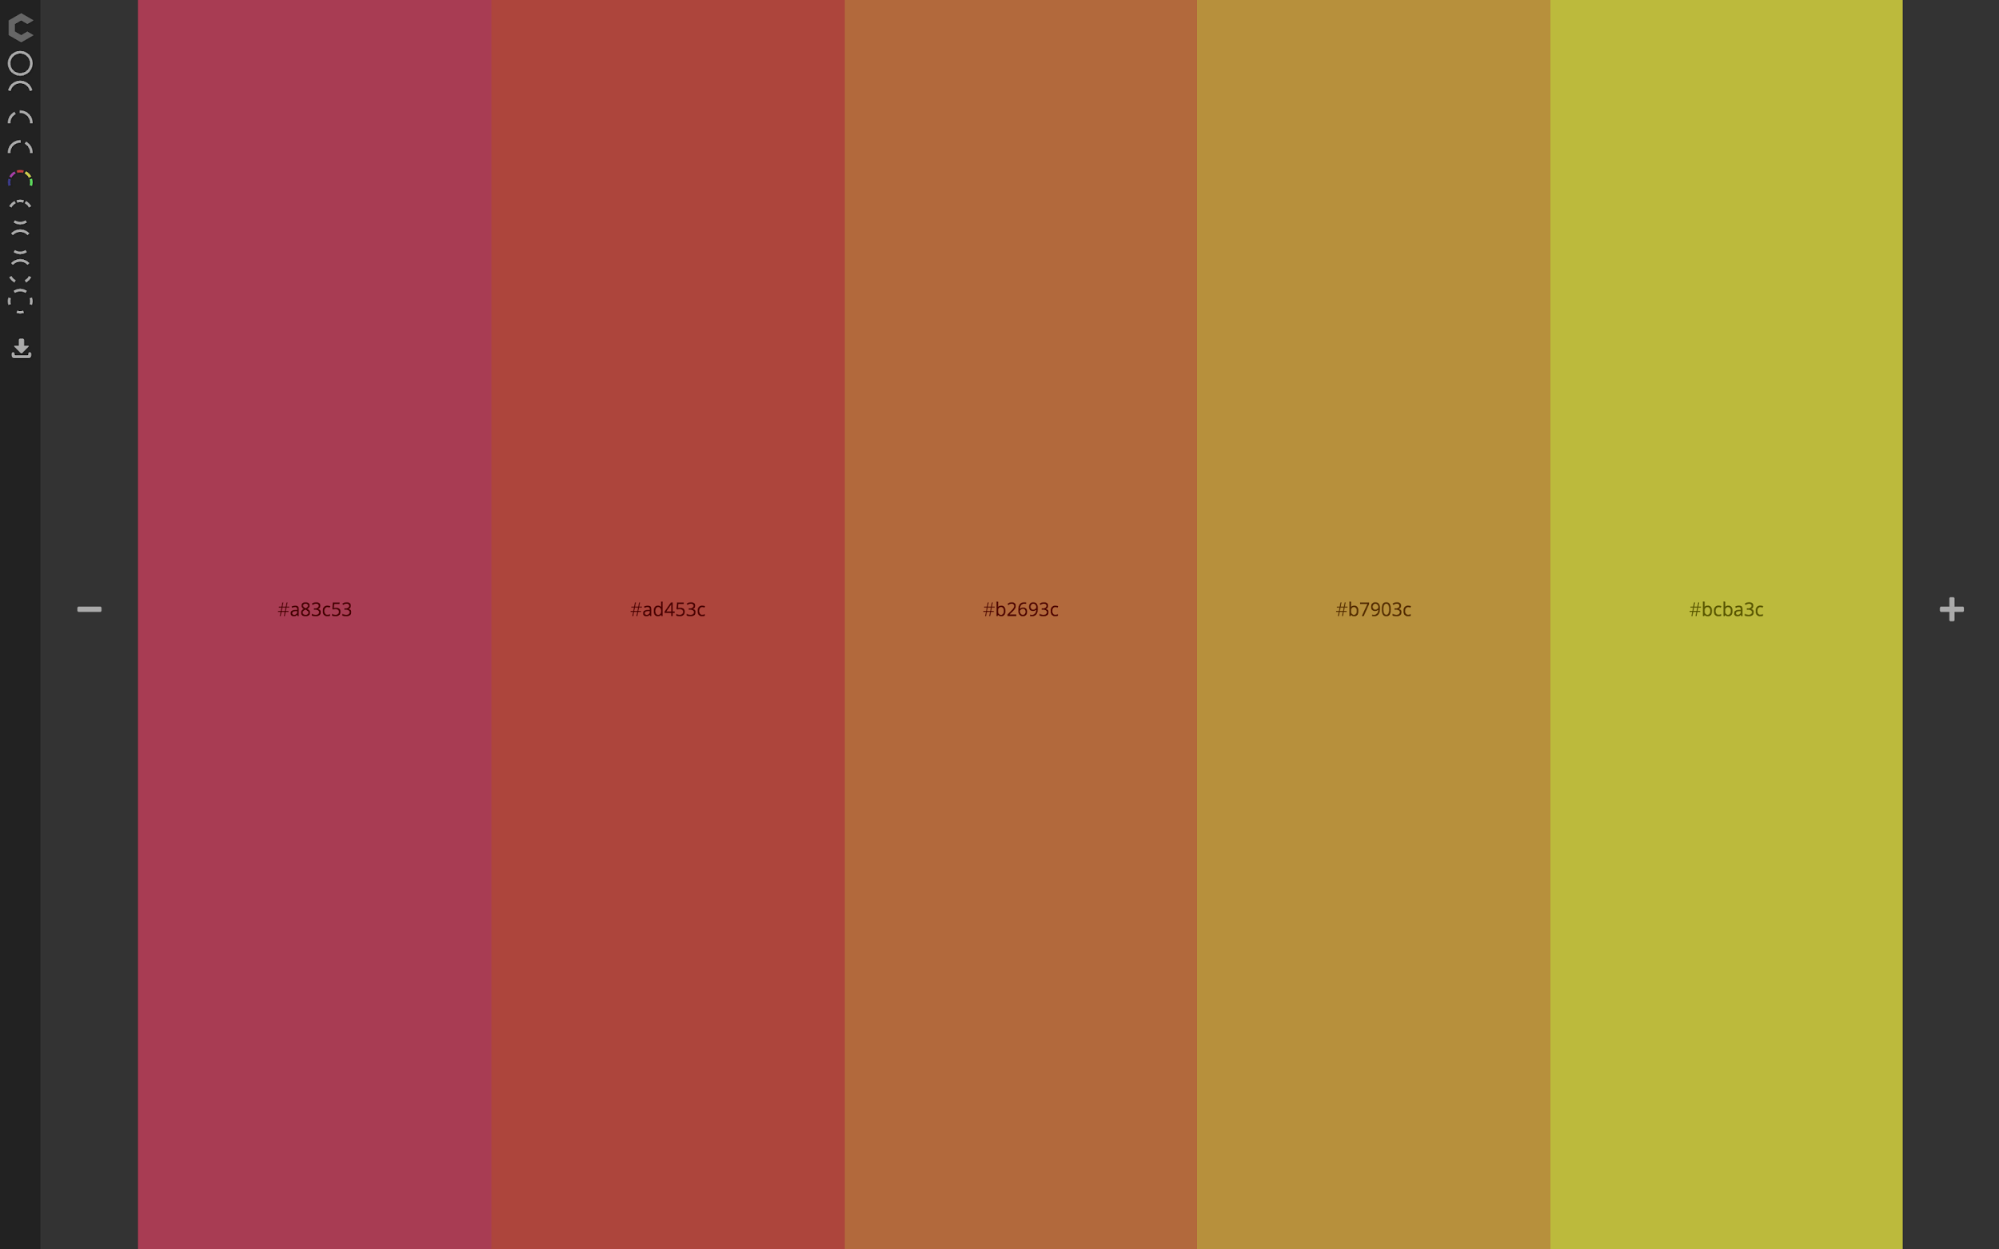 Web design 101: color theory | Webflow Blog